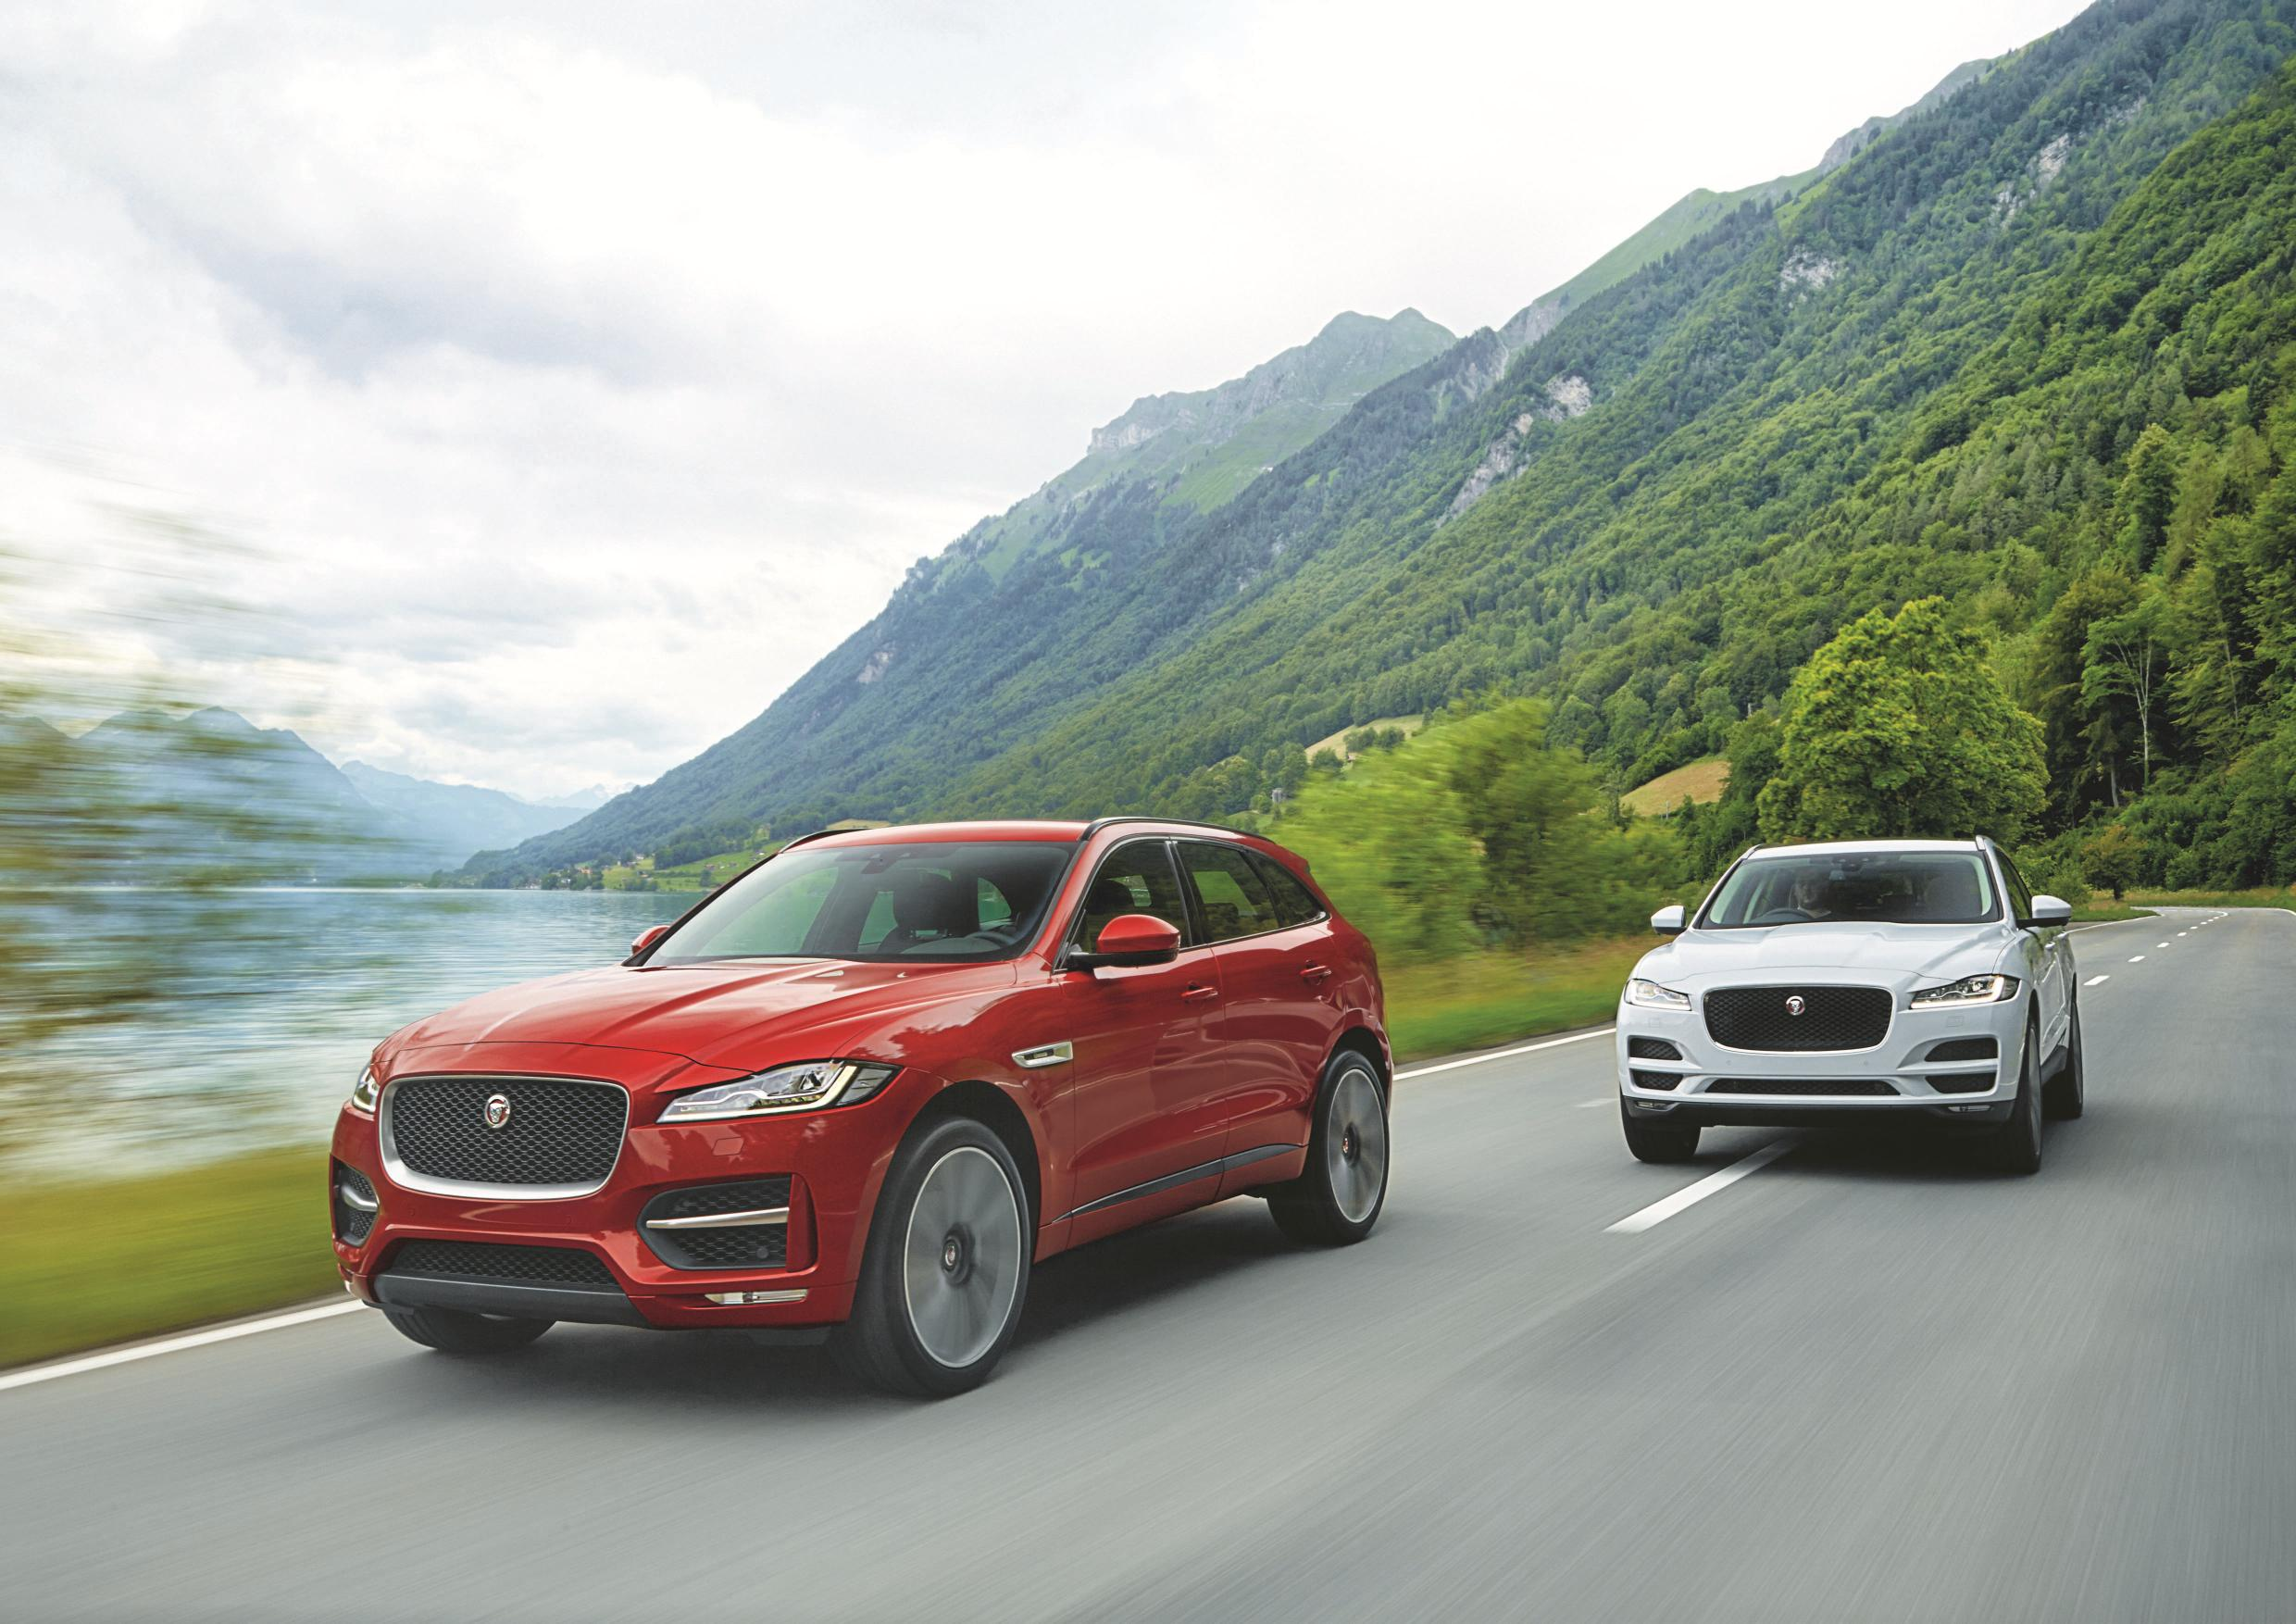 r all sport auto at showrooms pace f suv ingenium officially pack black jaguar new launched with news